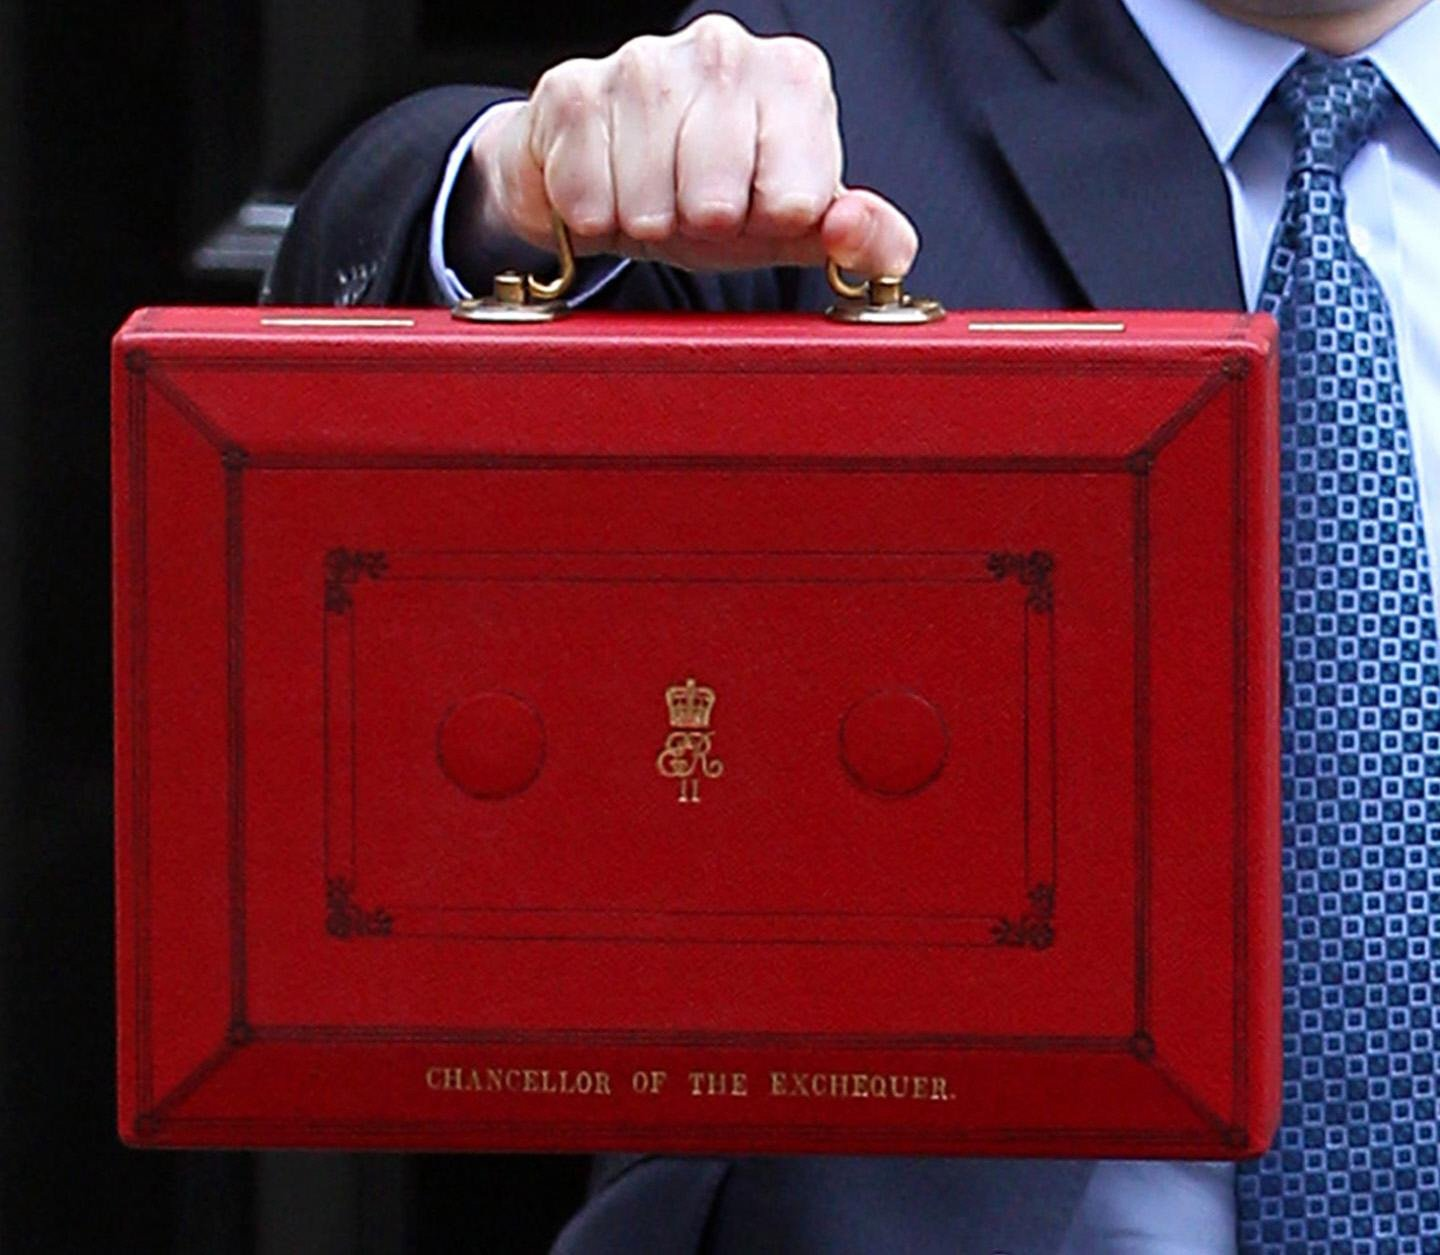 When is the Autumn Budget 2017, what time is it on and how to watch?